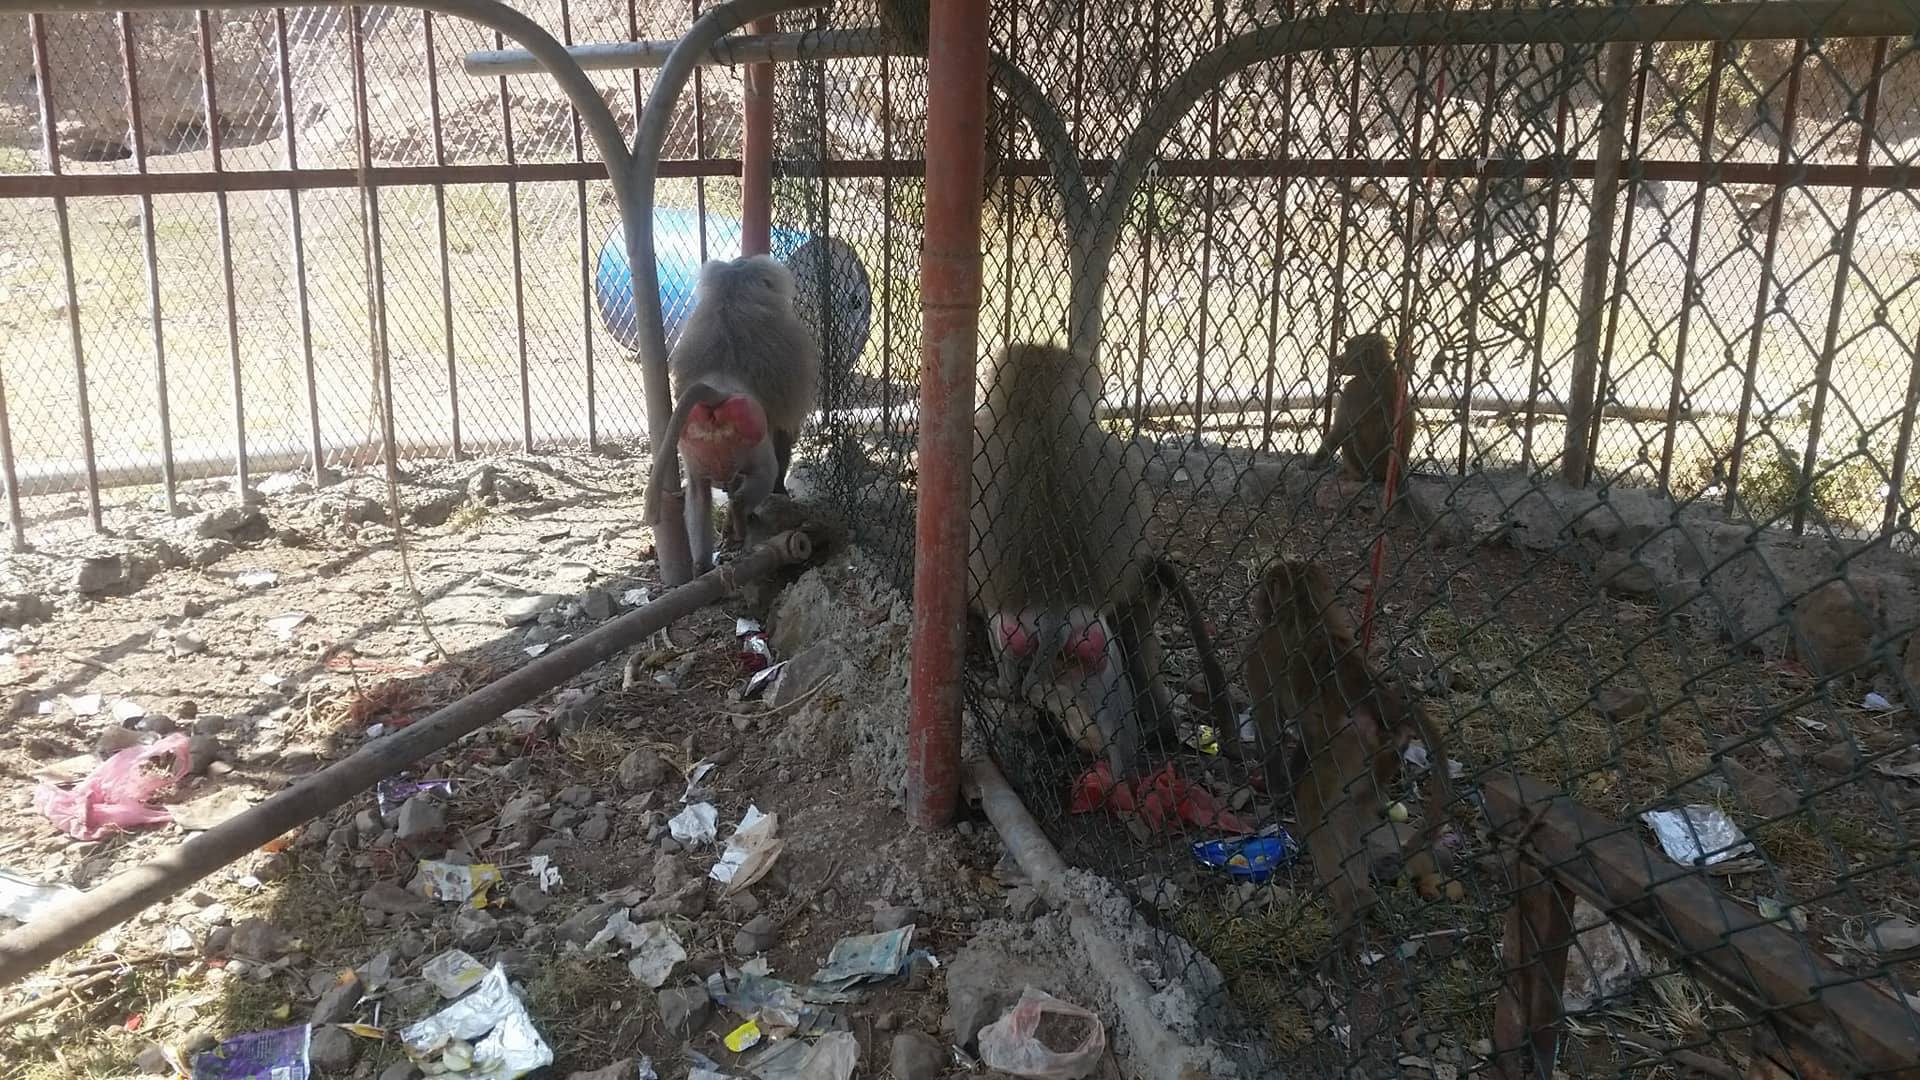 Ibb Zoo OWAPAR 22 october 2017 end of those sauna crates Yemen rescue.jpg